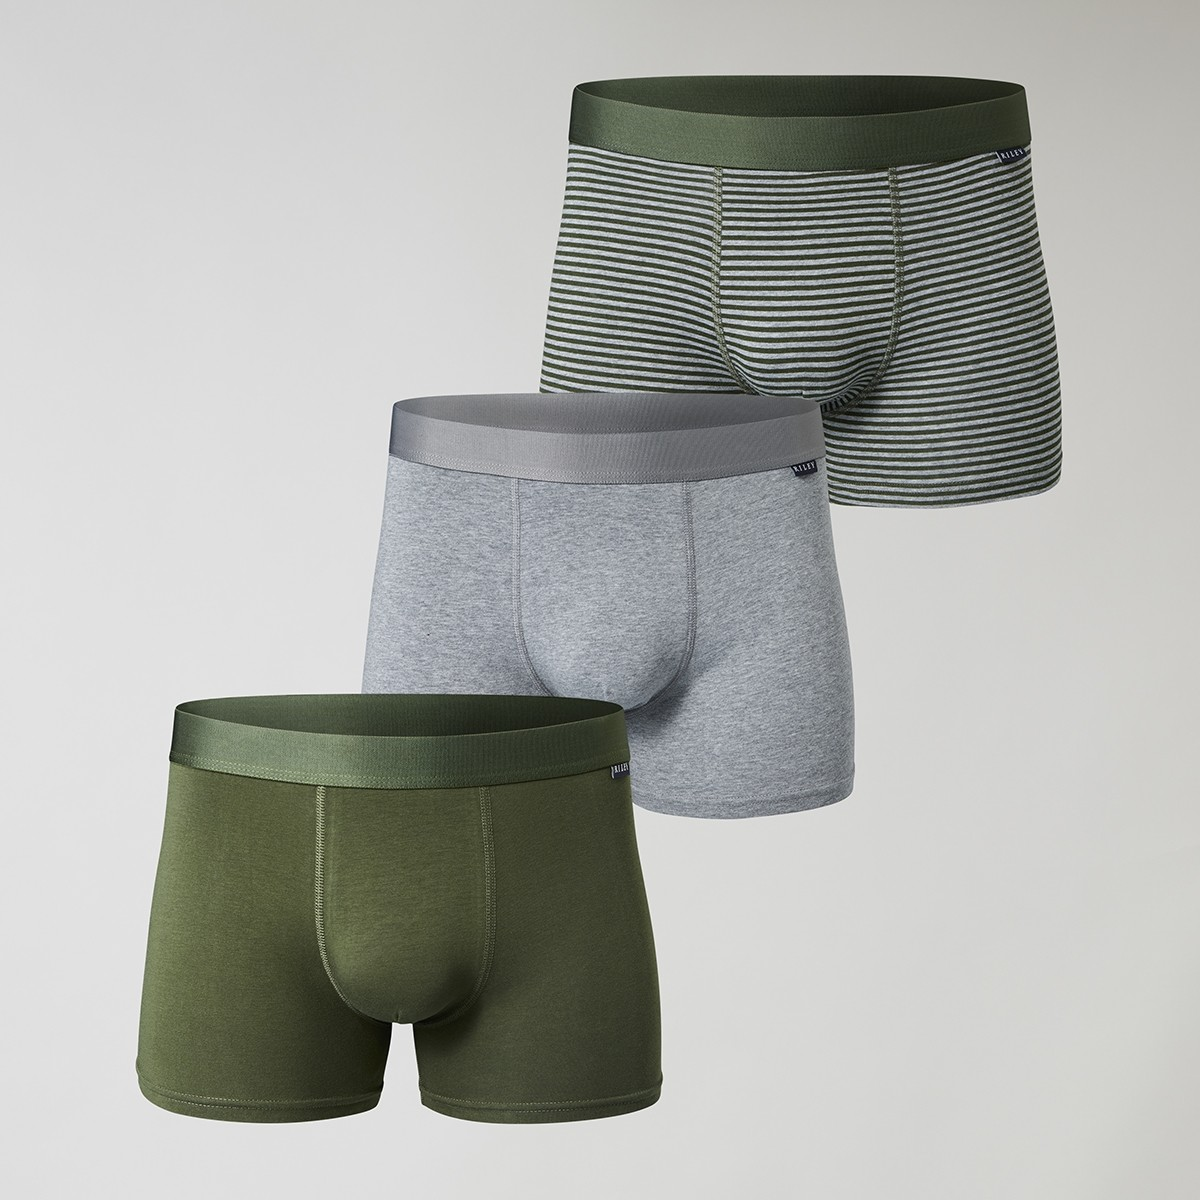 Kalsonger 3-Pack Boxer Briefs Multi | Riley | Brothers.se